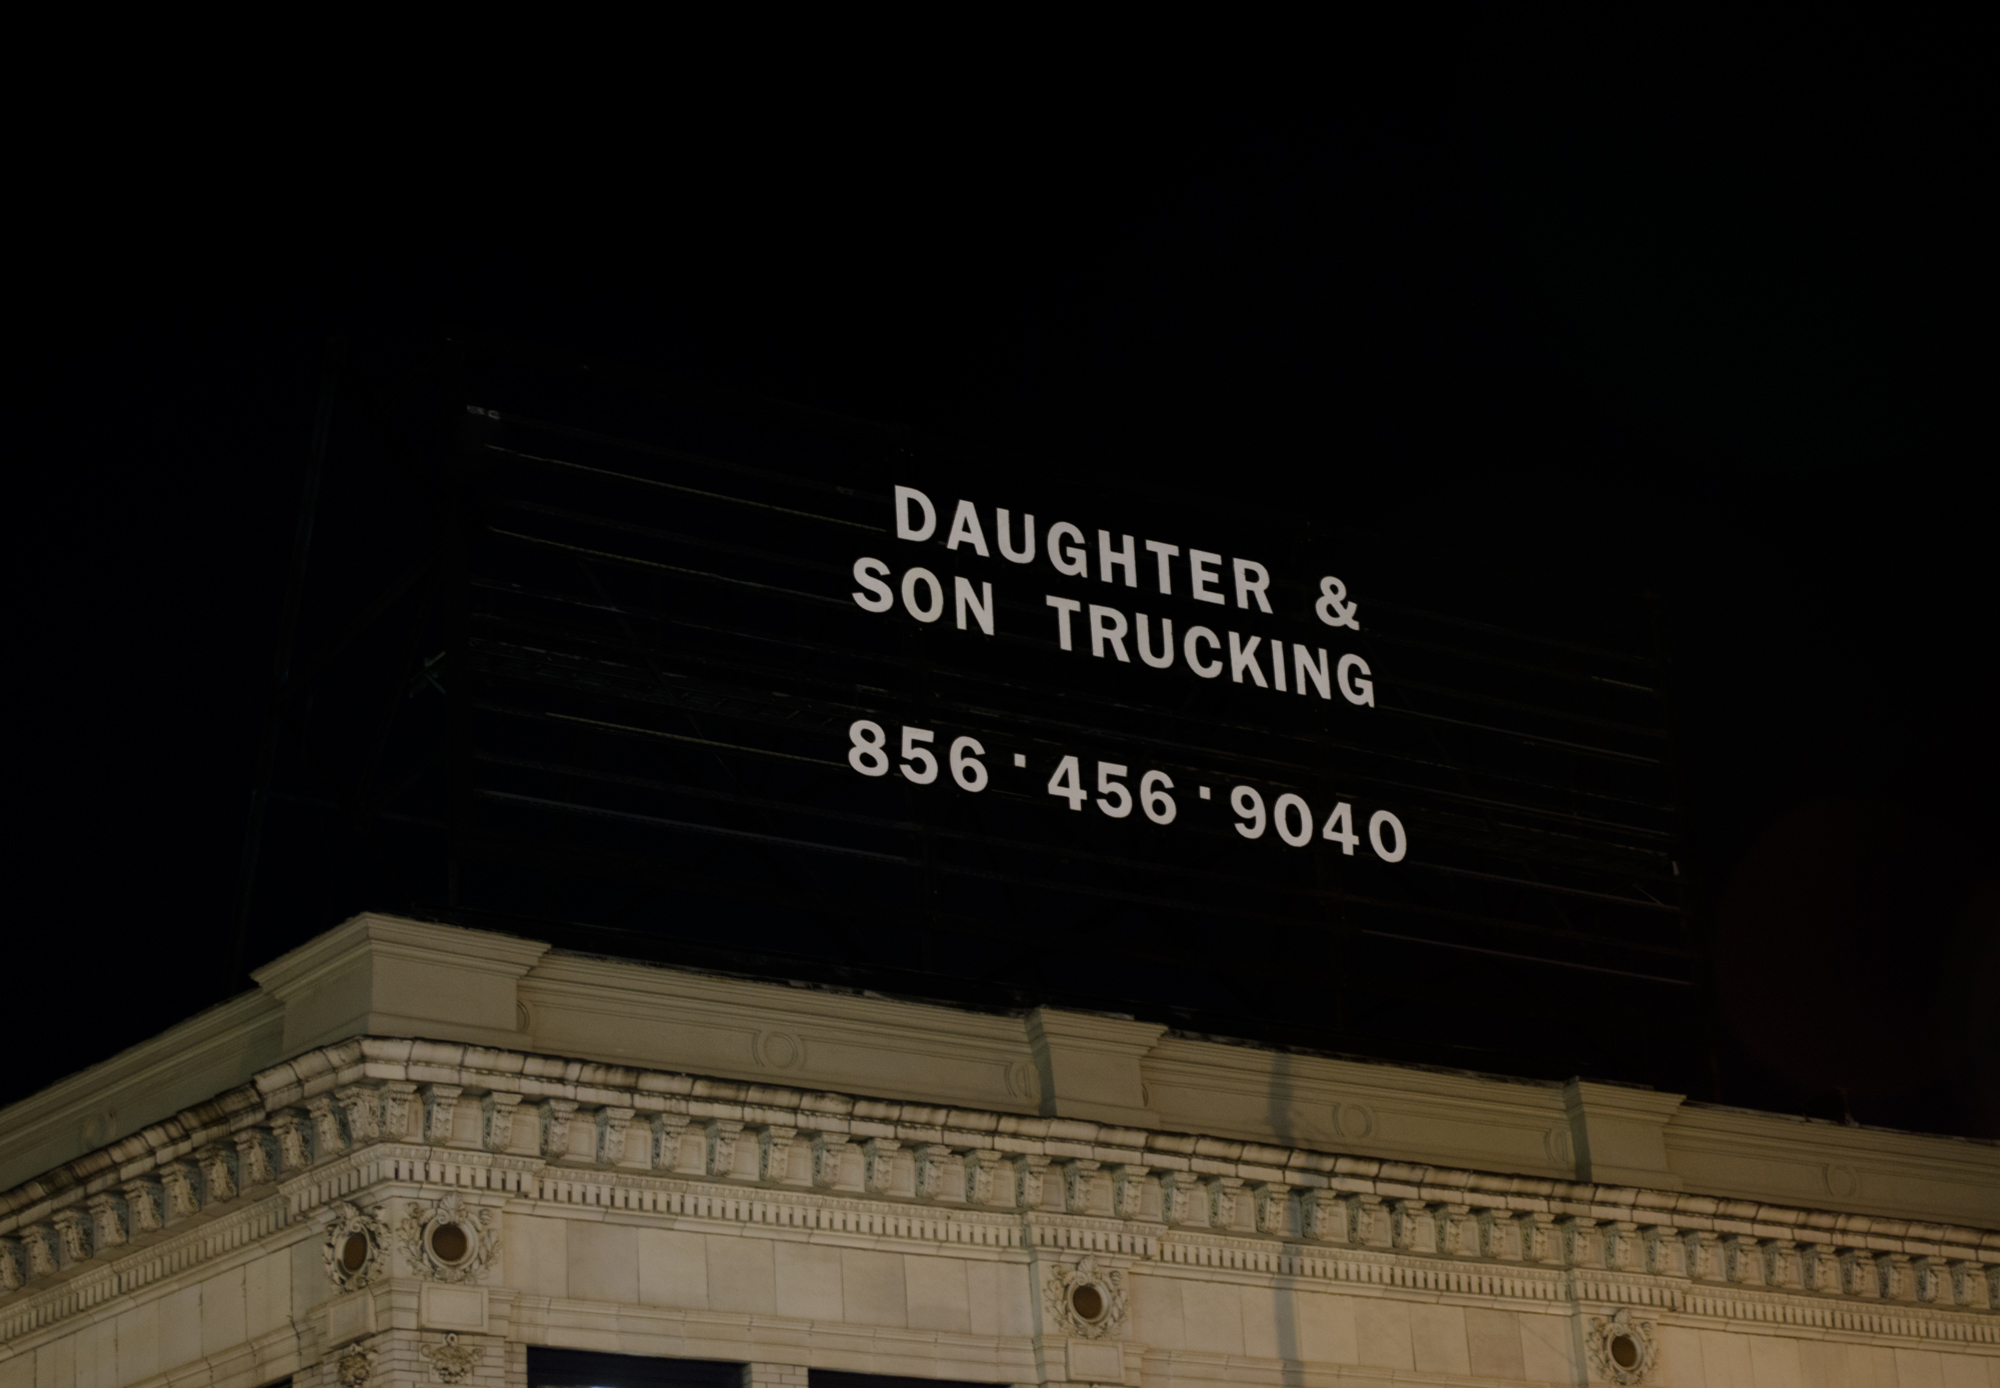 Daughter & Son Trucking